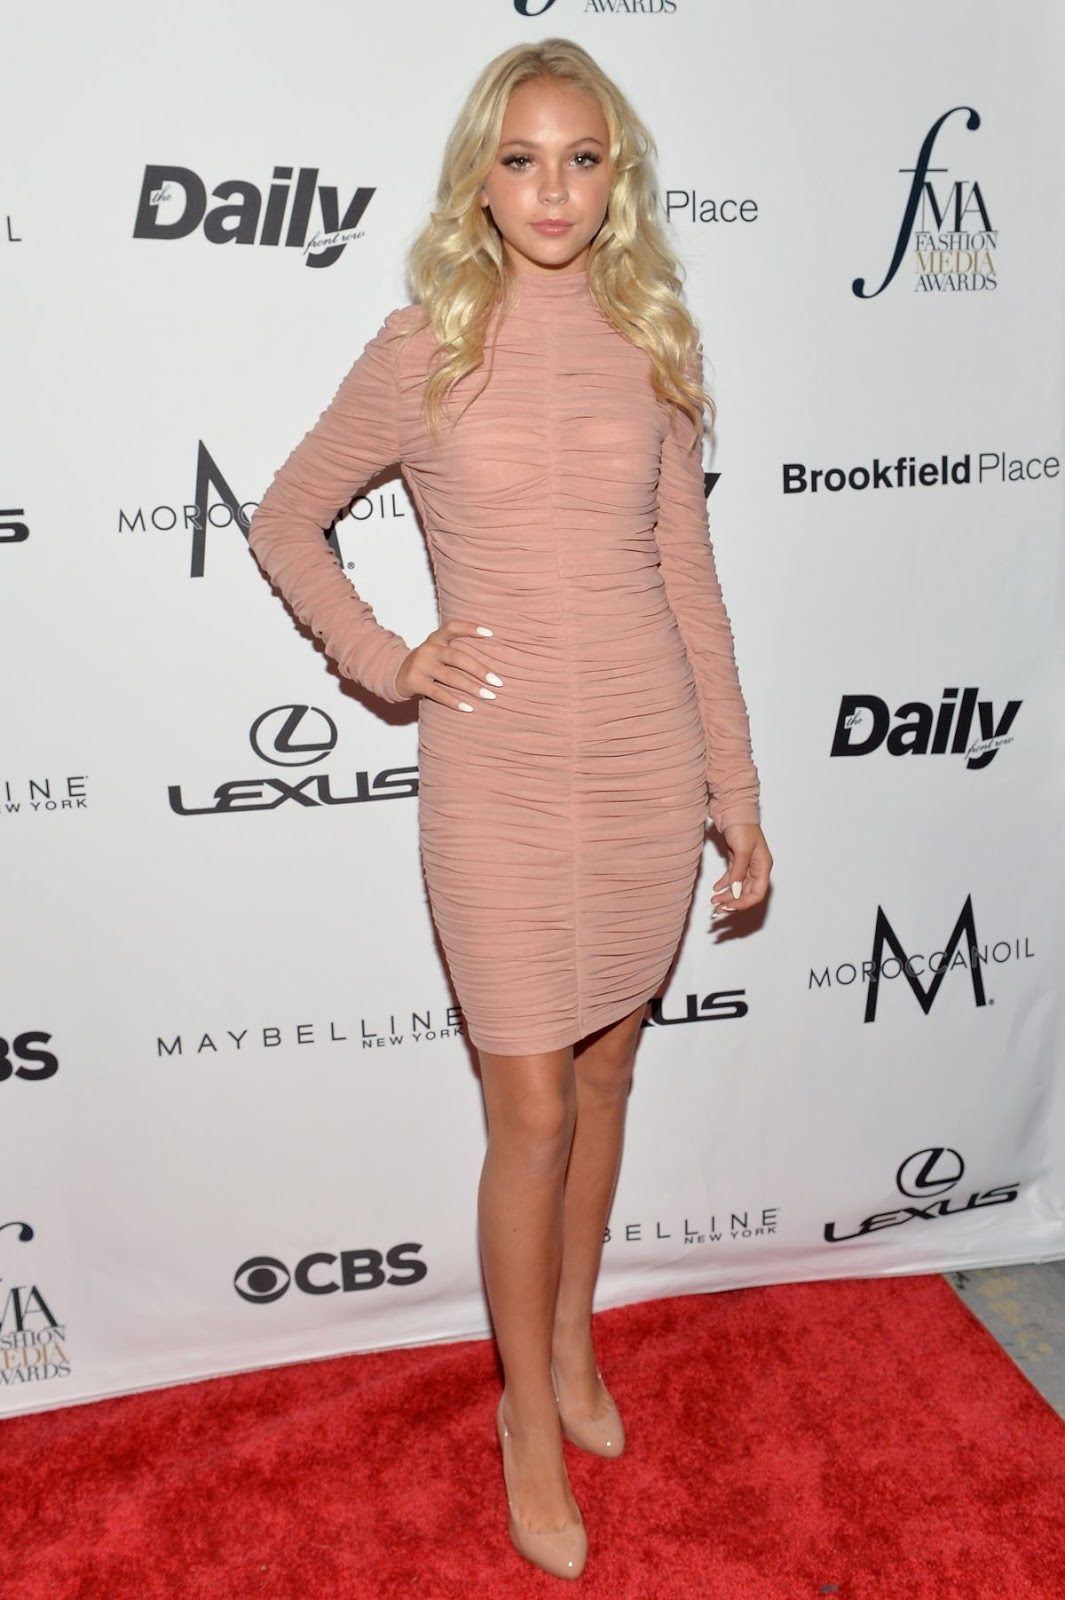 HQ Photos of Jordyn Jones At The Daily Front Row's 4th Annual Fashion Media Awards In New York